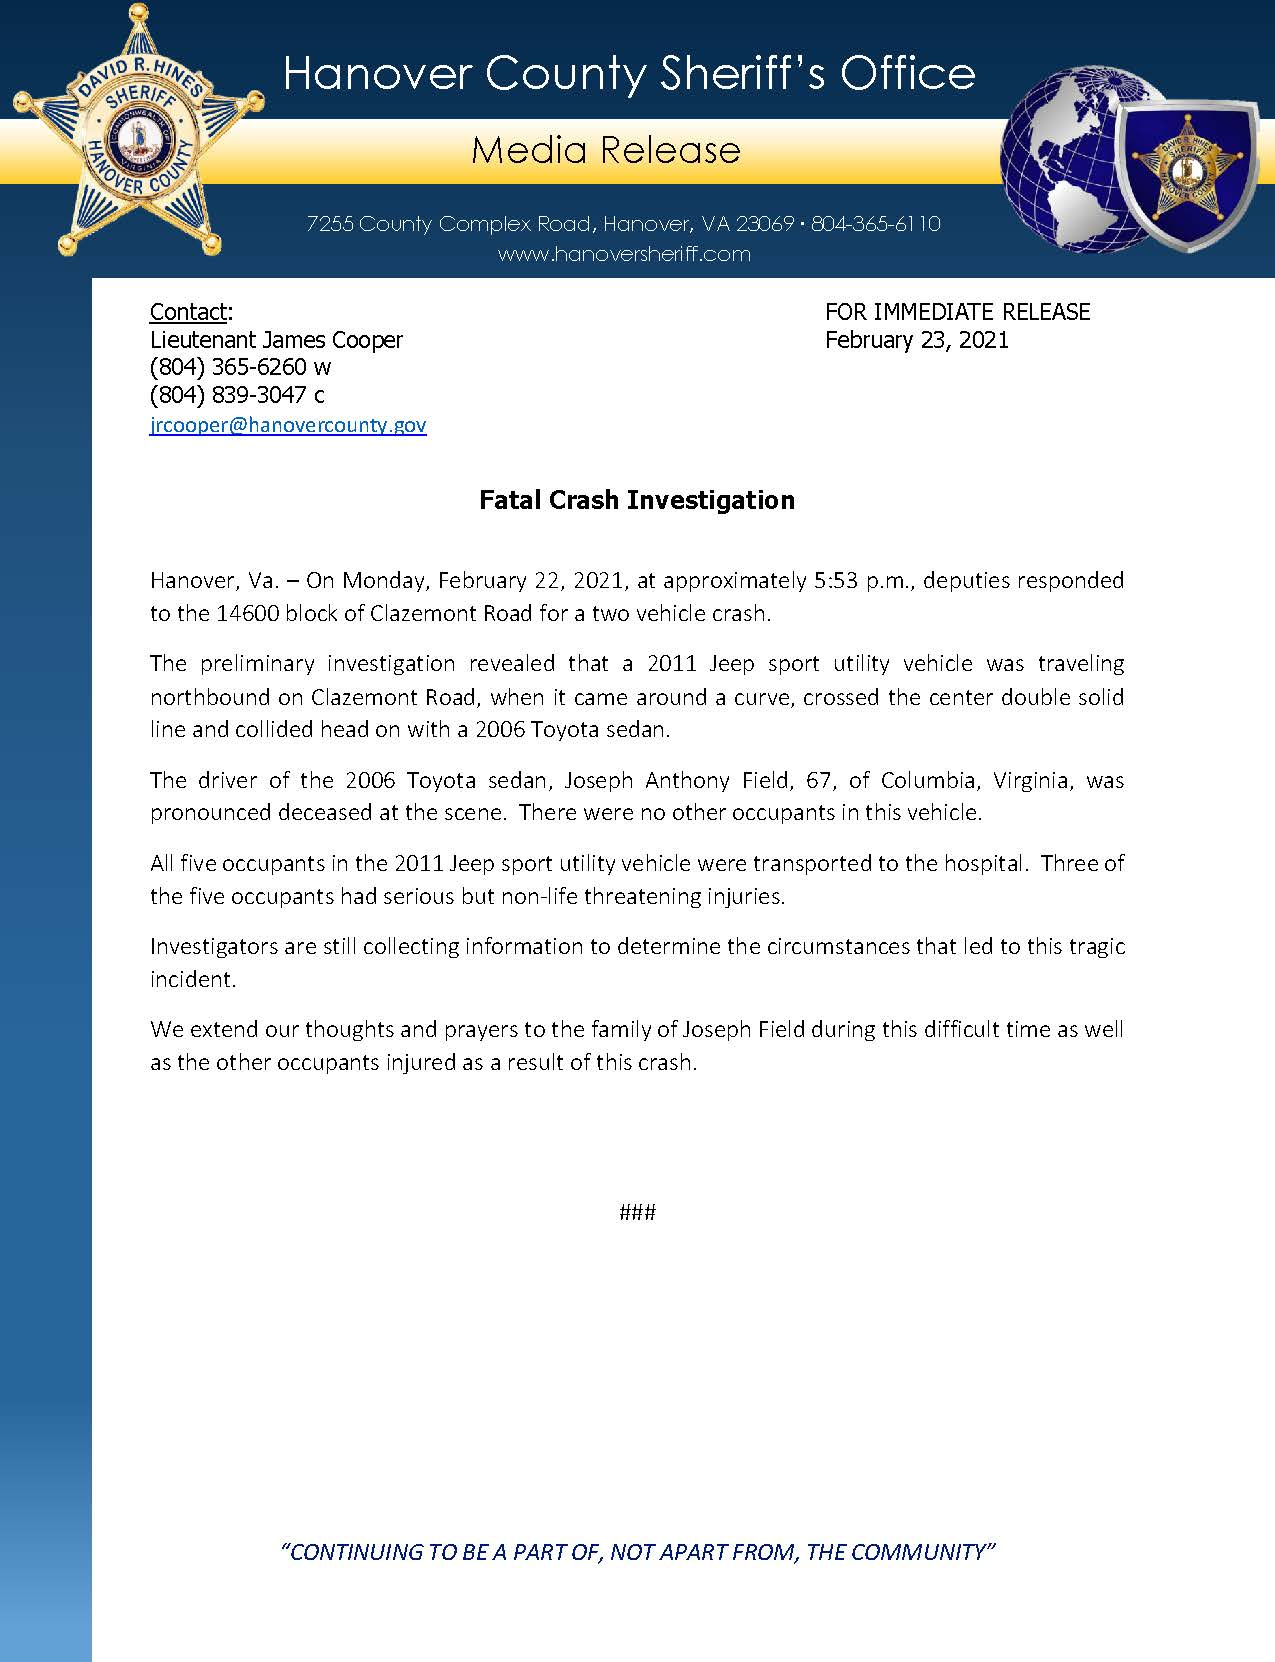 HCSO Media Release - Fatal Crash Investigation 2.23.21